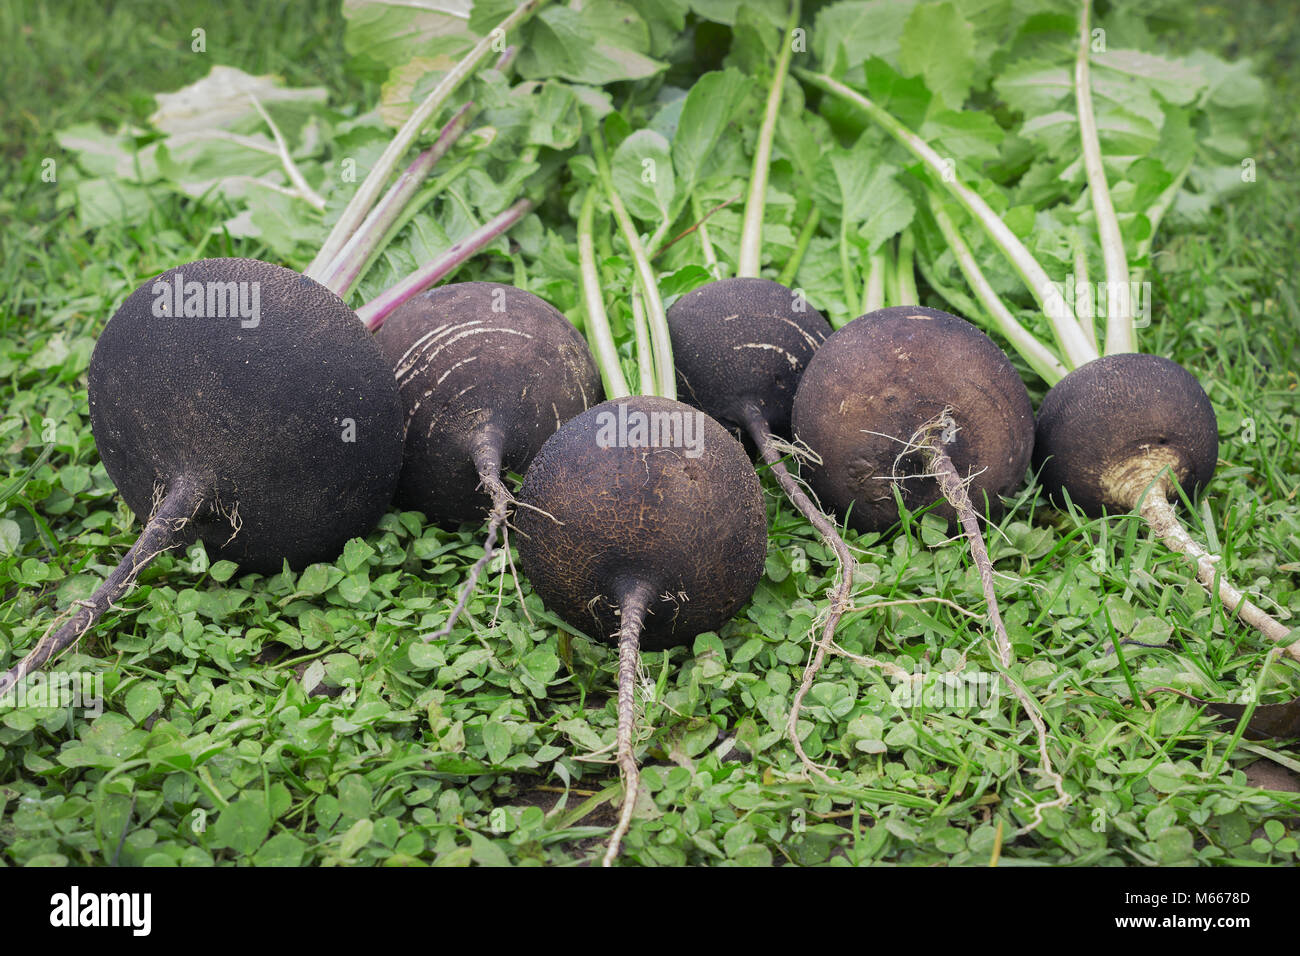 Black radish reaches maturity in October. Valuable root vegetables - Stock Image